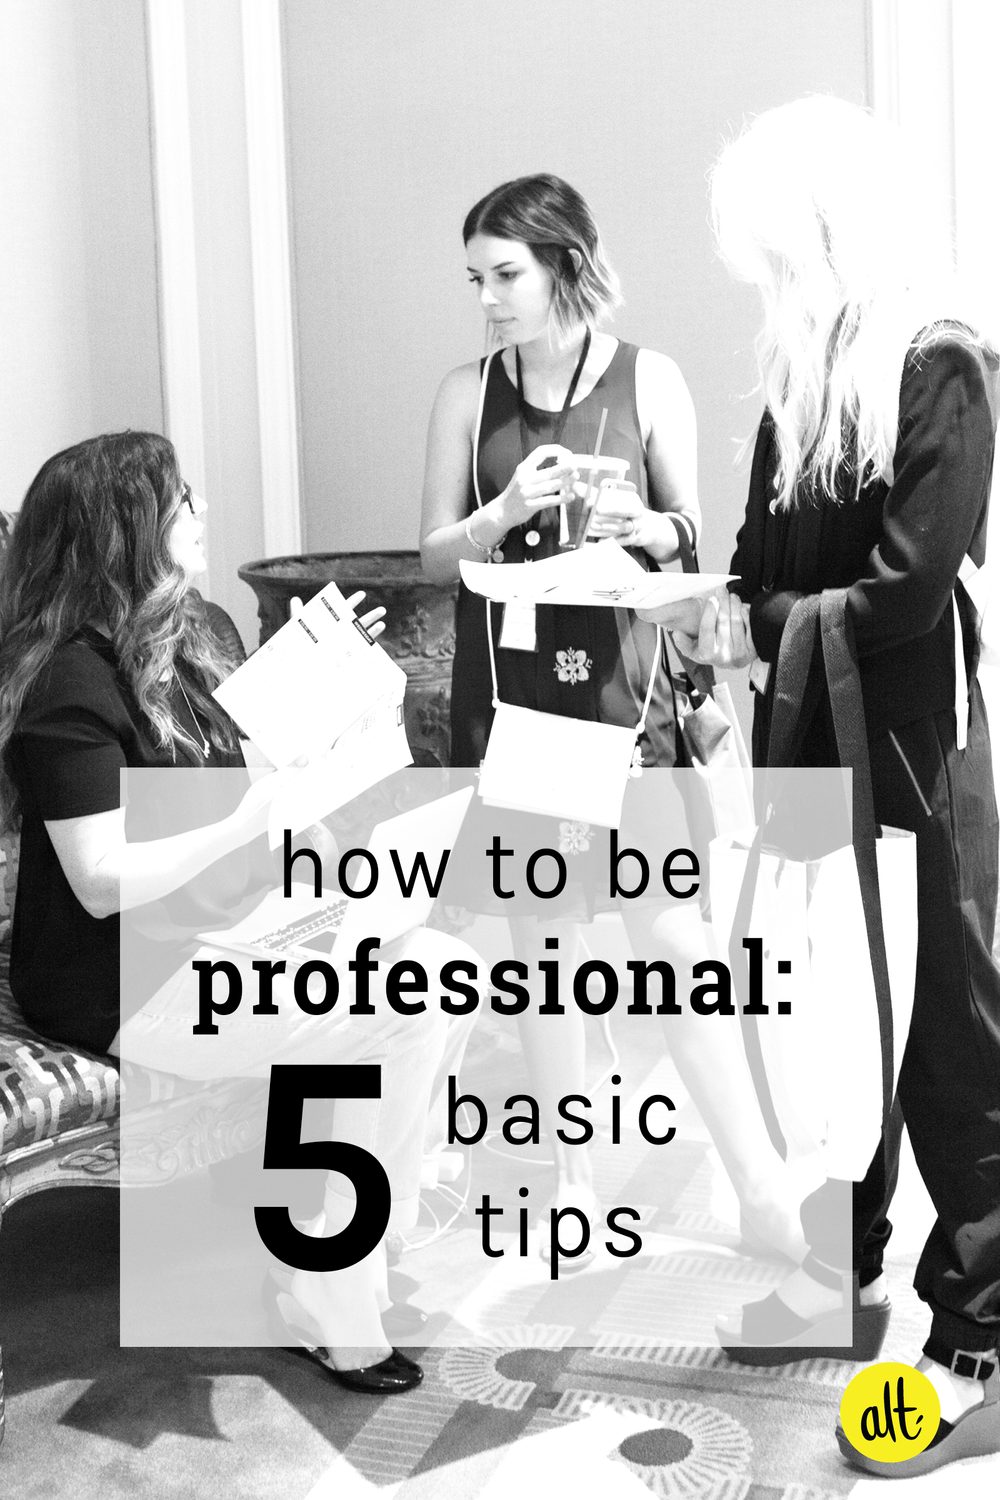 Five basic tips for how to be professional whether you're an influencer or growing into a brand.